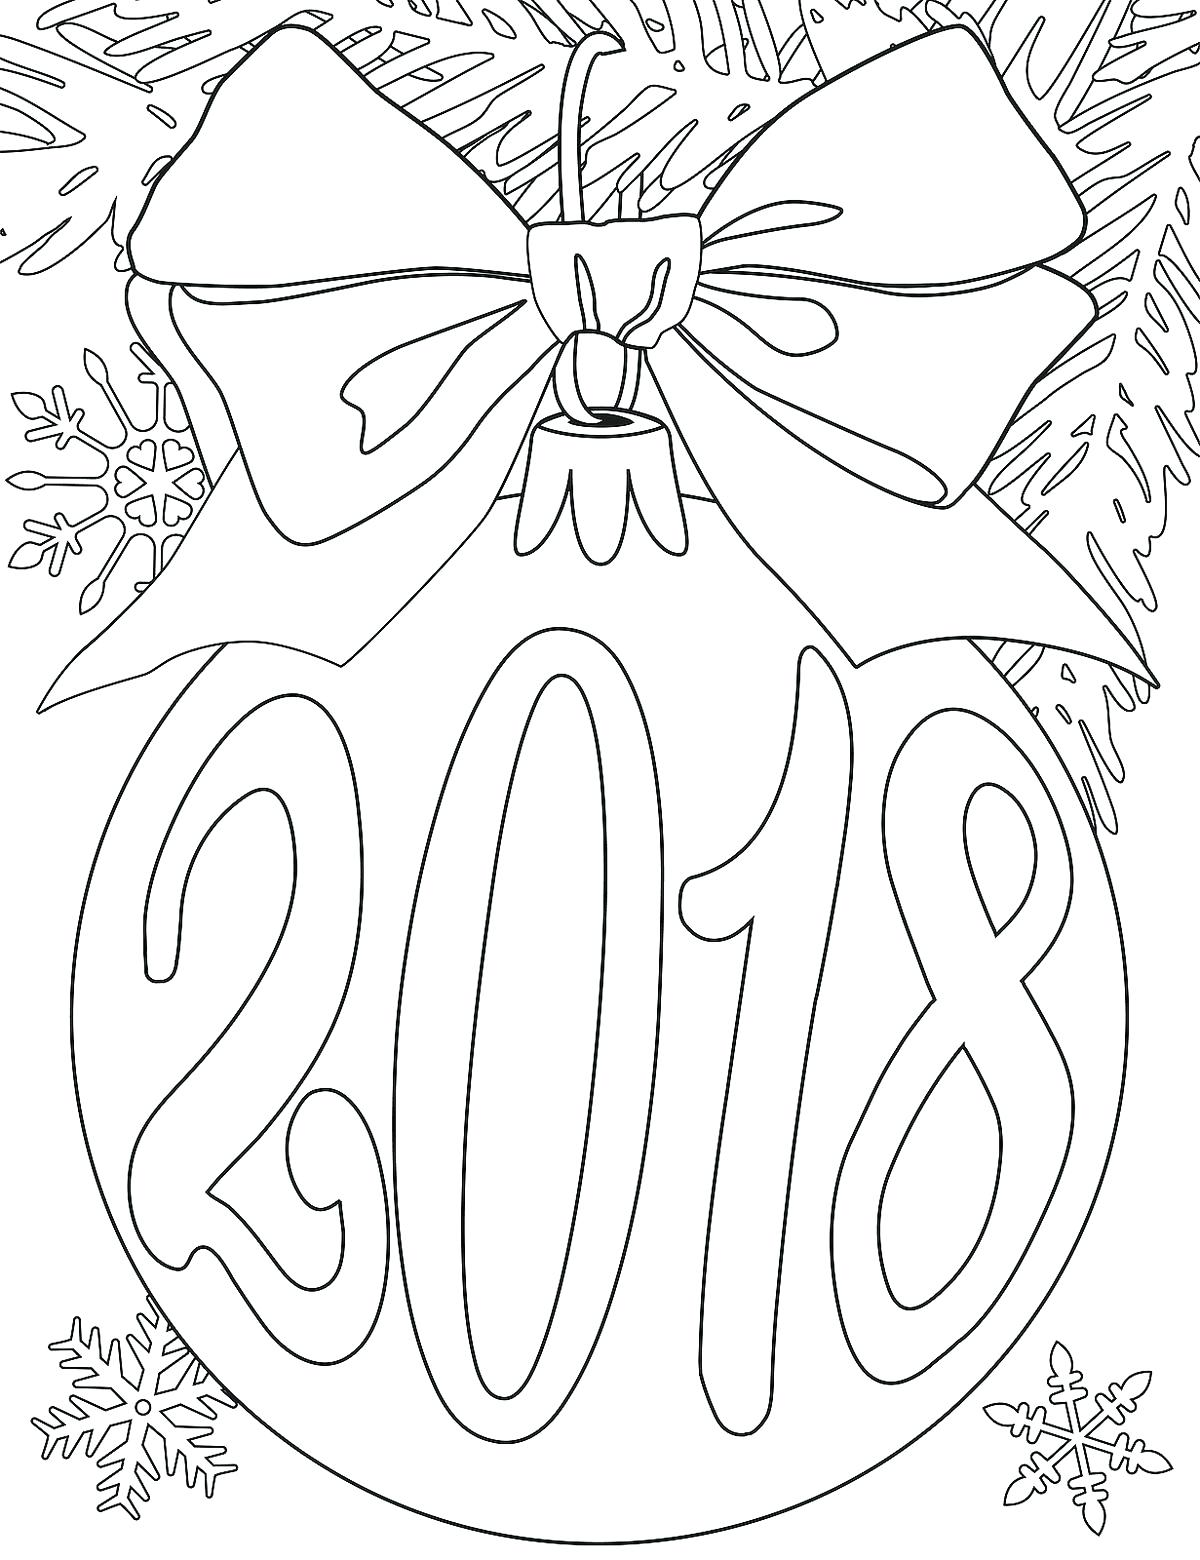 1200x1560 Coloring Kobe Bryant Coloring Pages New Year Printable Fun